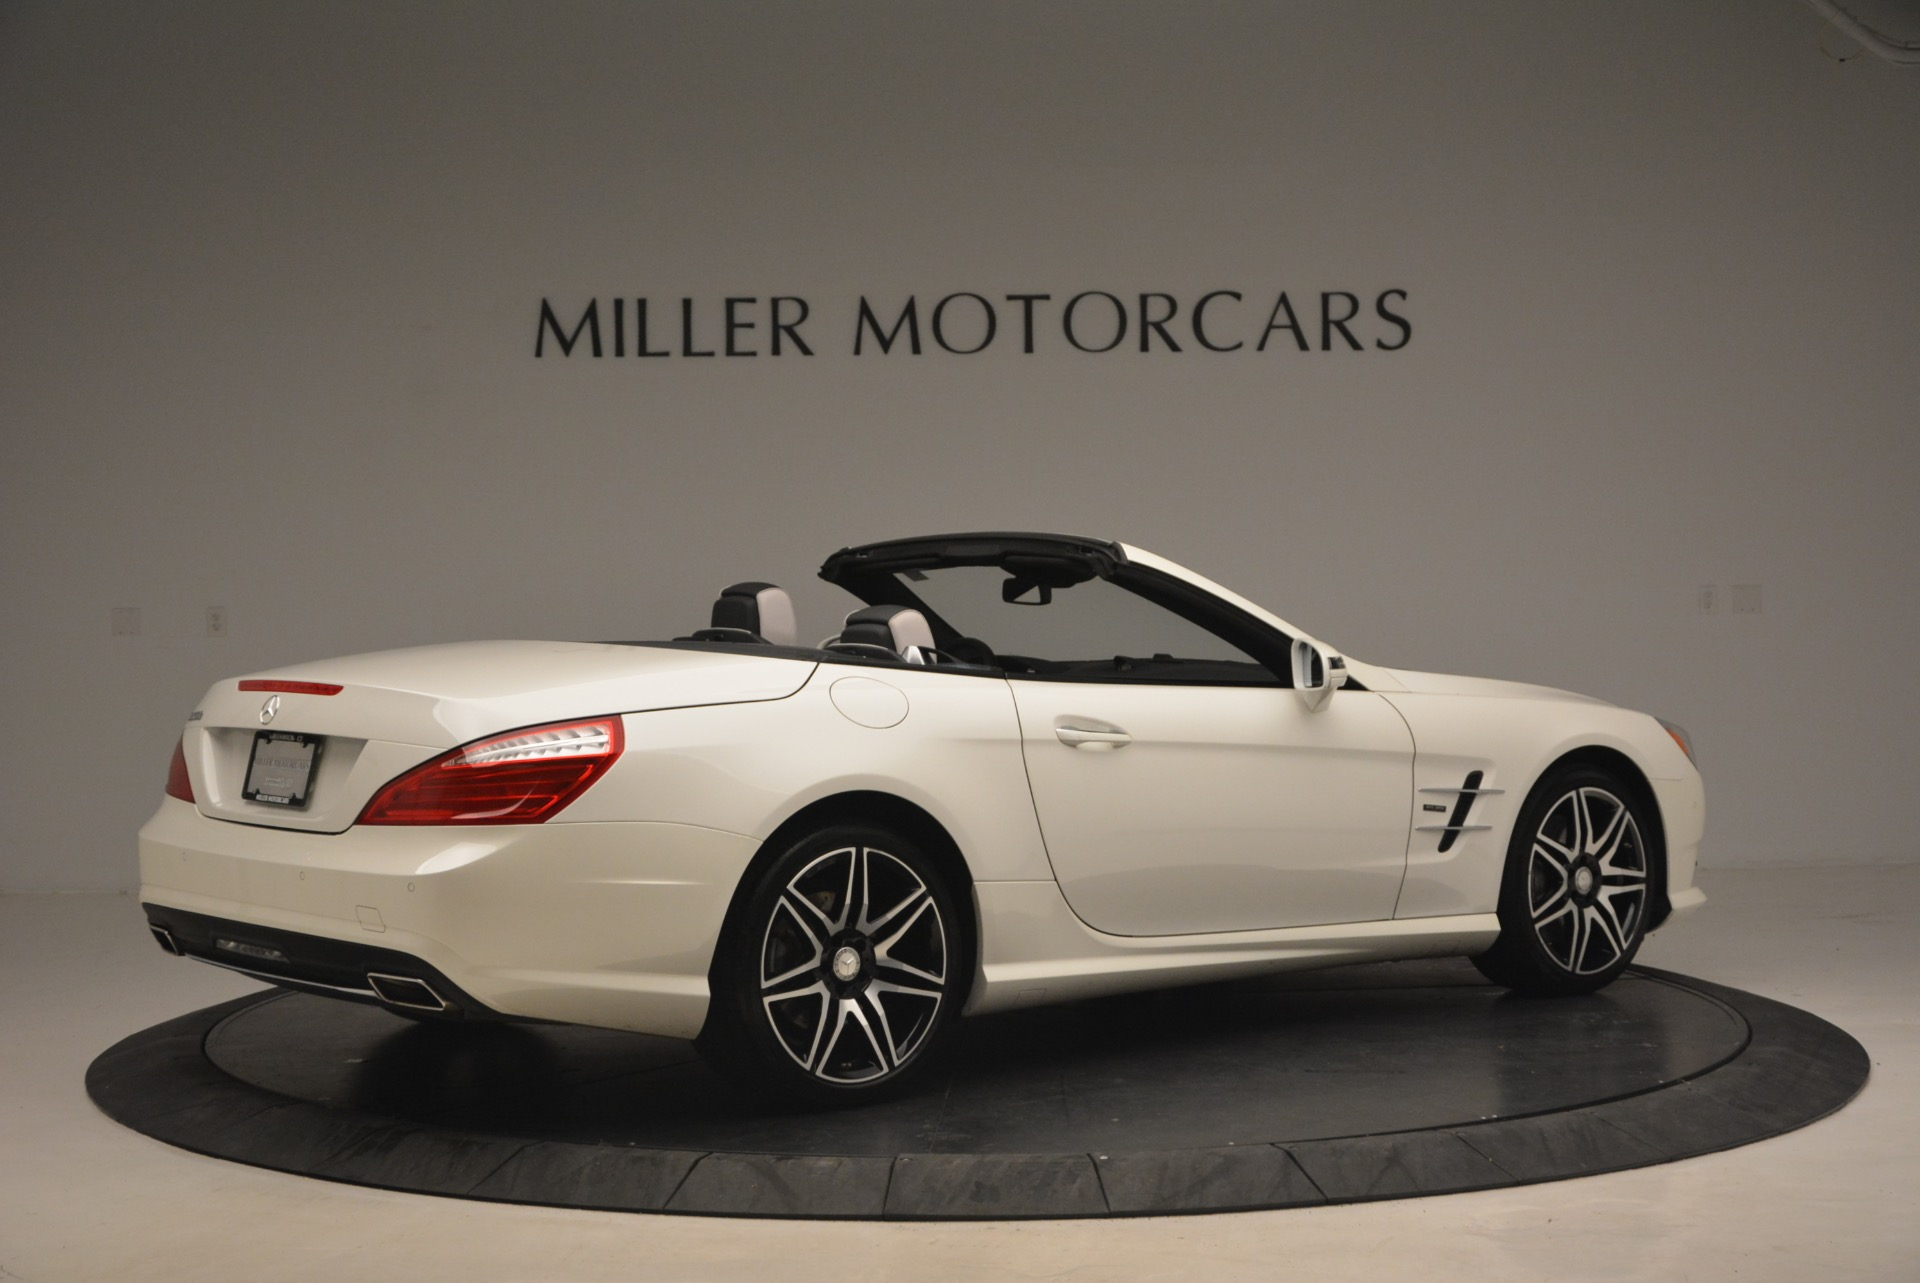 Used 2015 Mercedes Benz SL-Class SL 550 For Sale In Greenwich, CT 1261_p8